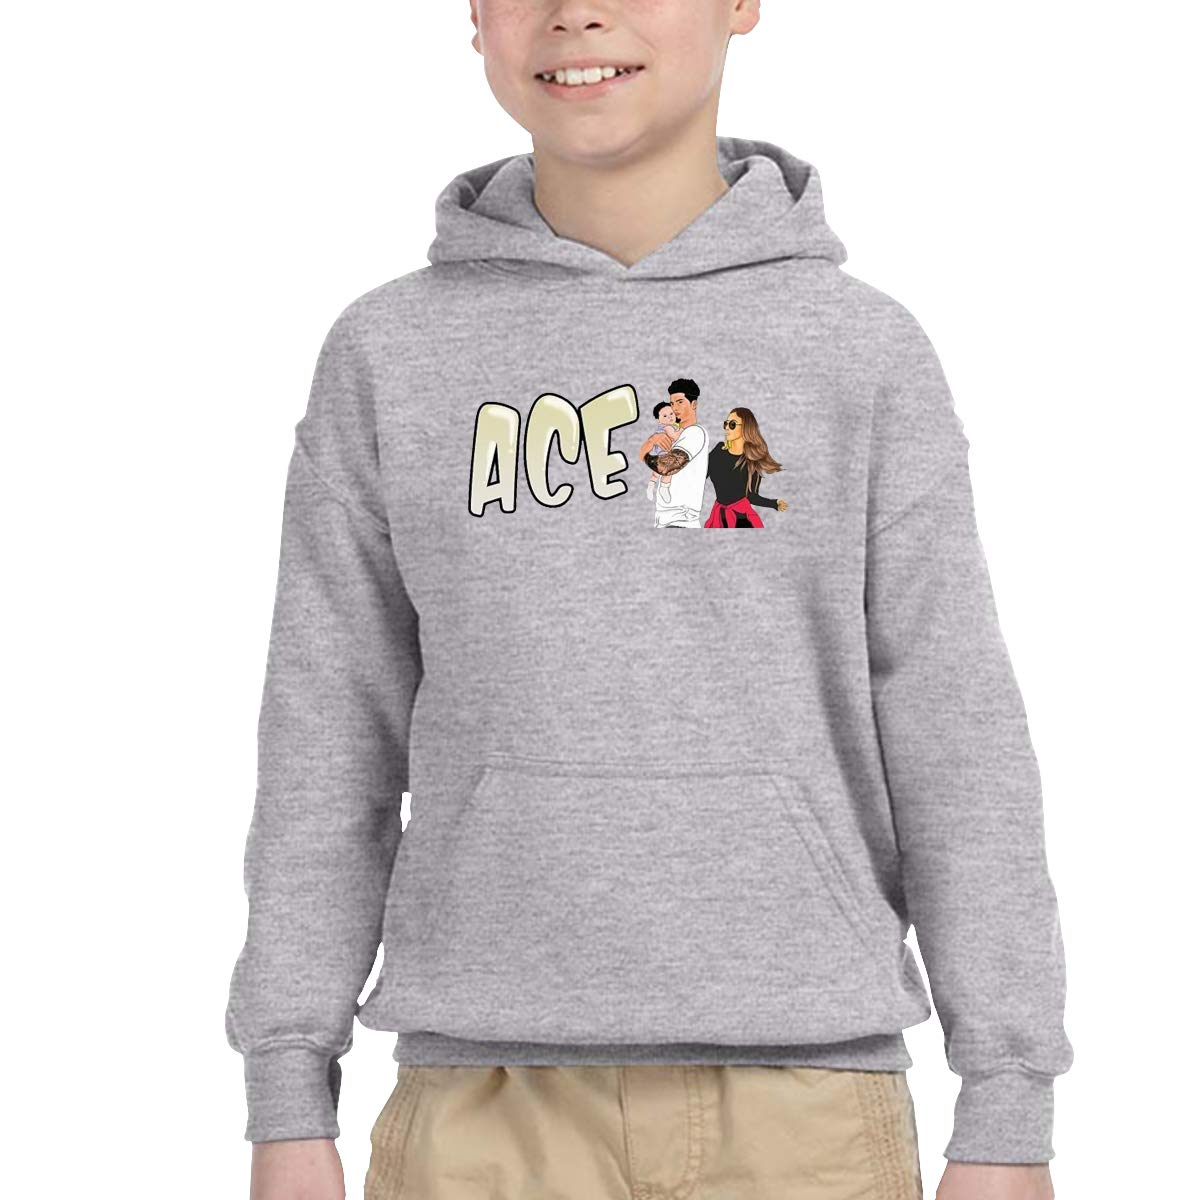 2-6 Year Old Childrens Hooded Pocket Sweater Personality Street Trend Creation ACE Family Logo Gray